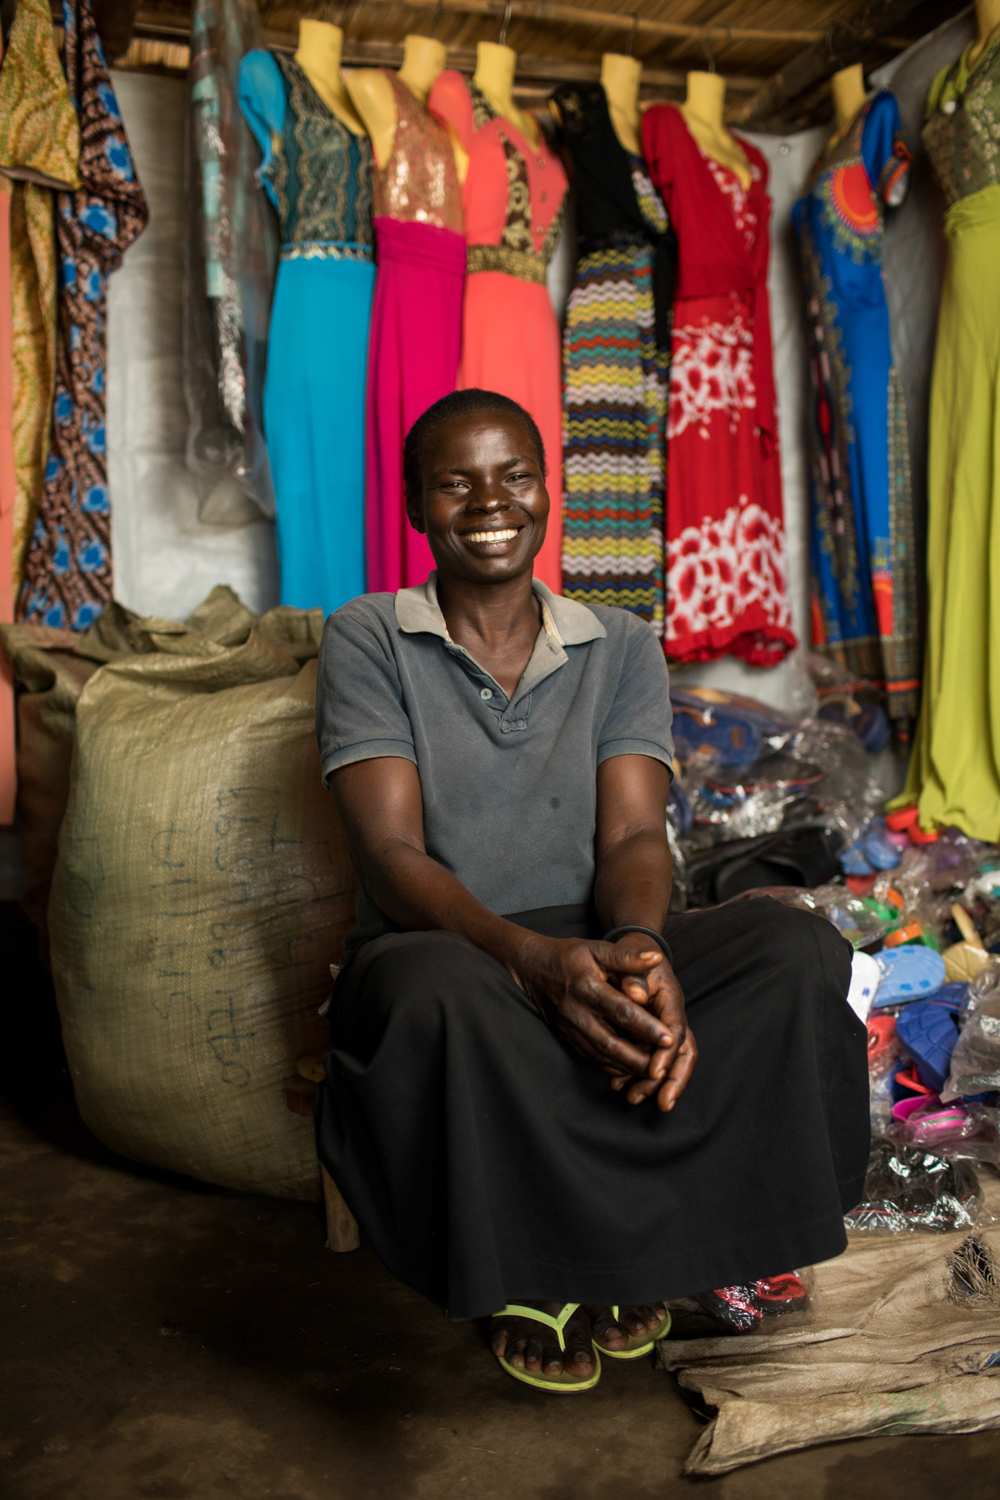 SE savings group member Harriet in her shop. Photo by Esther Havens.